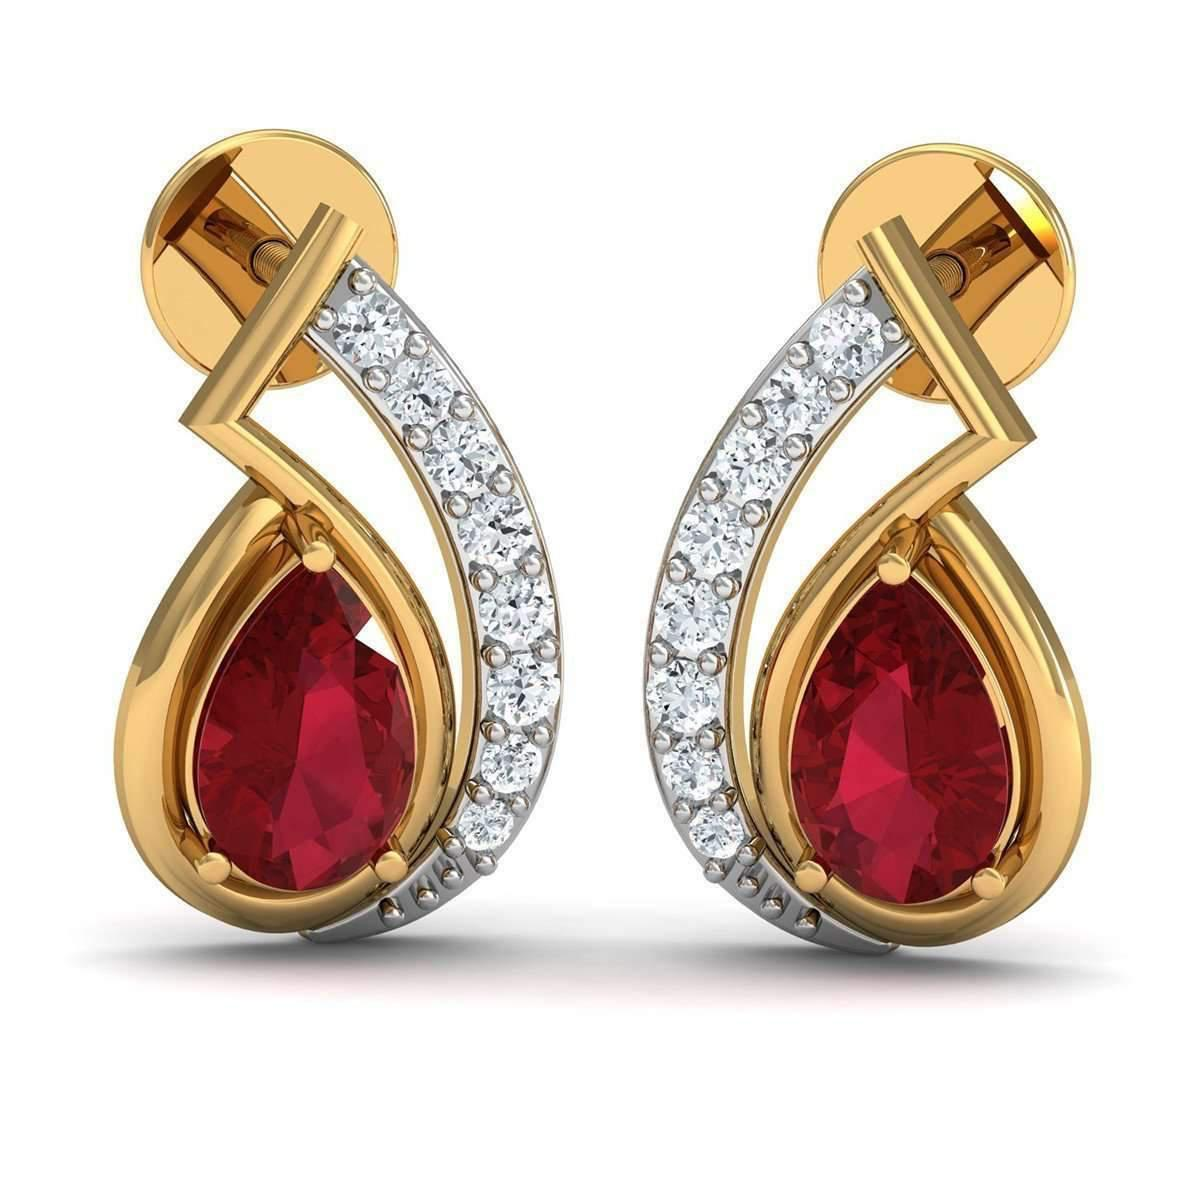 Diamoire Jewels Heart Shaped Ruby and Diamonds Pave 14kt Yellow Gold Earrings CUJzOO